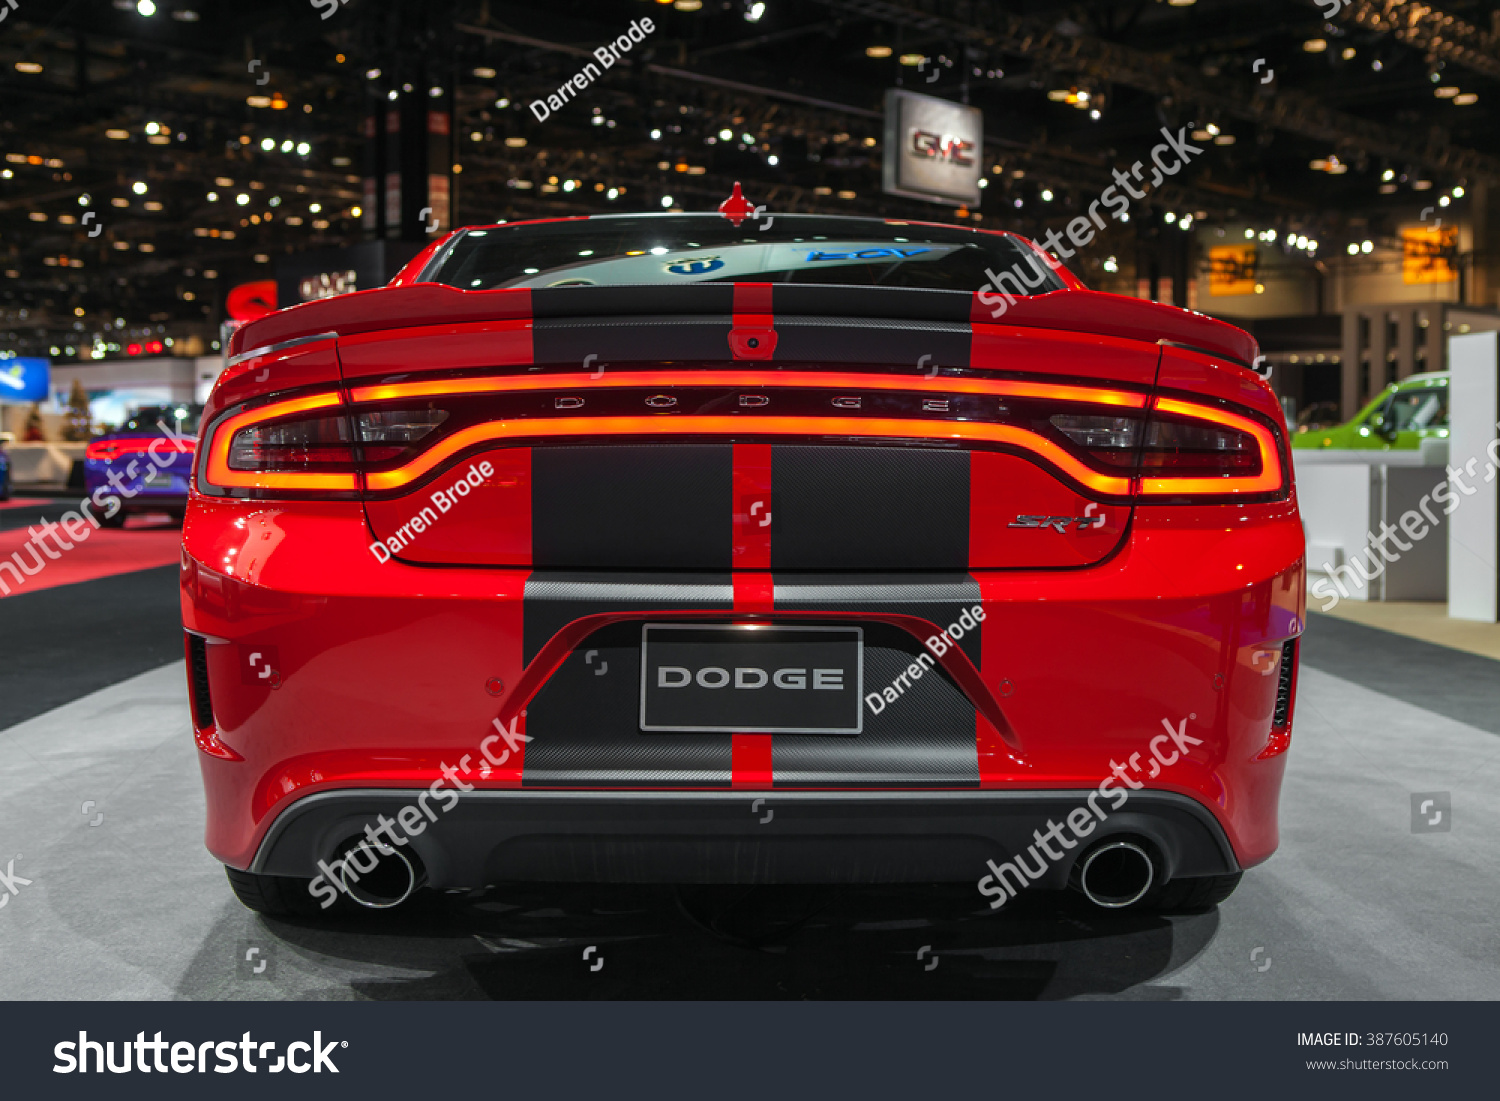 Chicago february 12 the 2017 dodge charger srt hellcat on display at the chicago